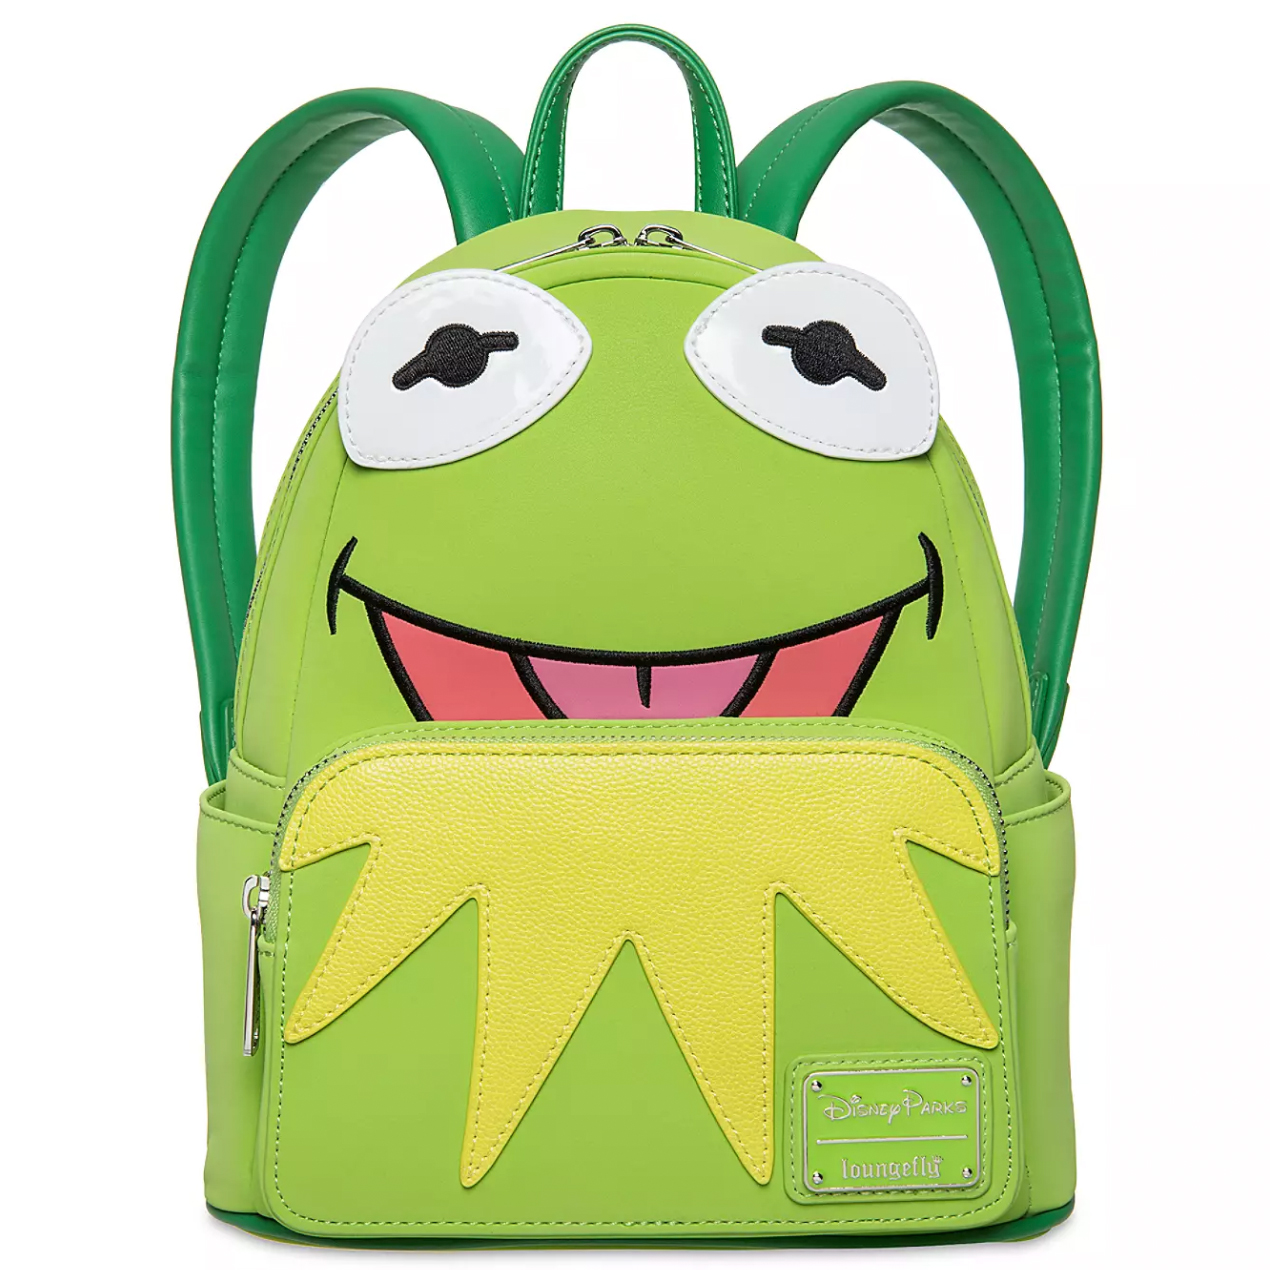 Kermit Mini Backpack by Loungefly